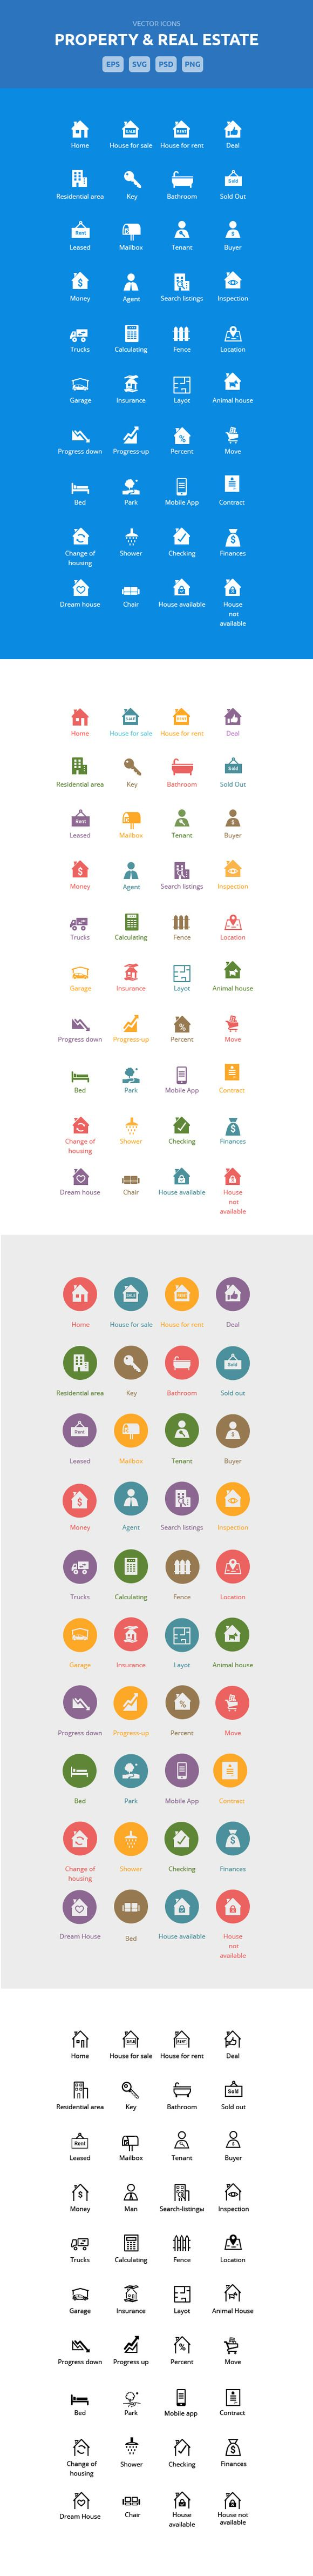 Property & Real Estate Icons by bestwebsoft on Creative Market